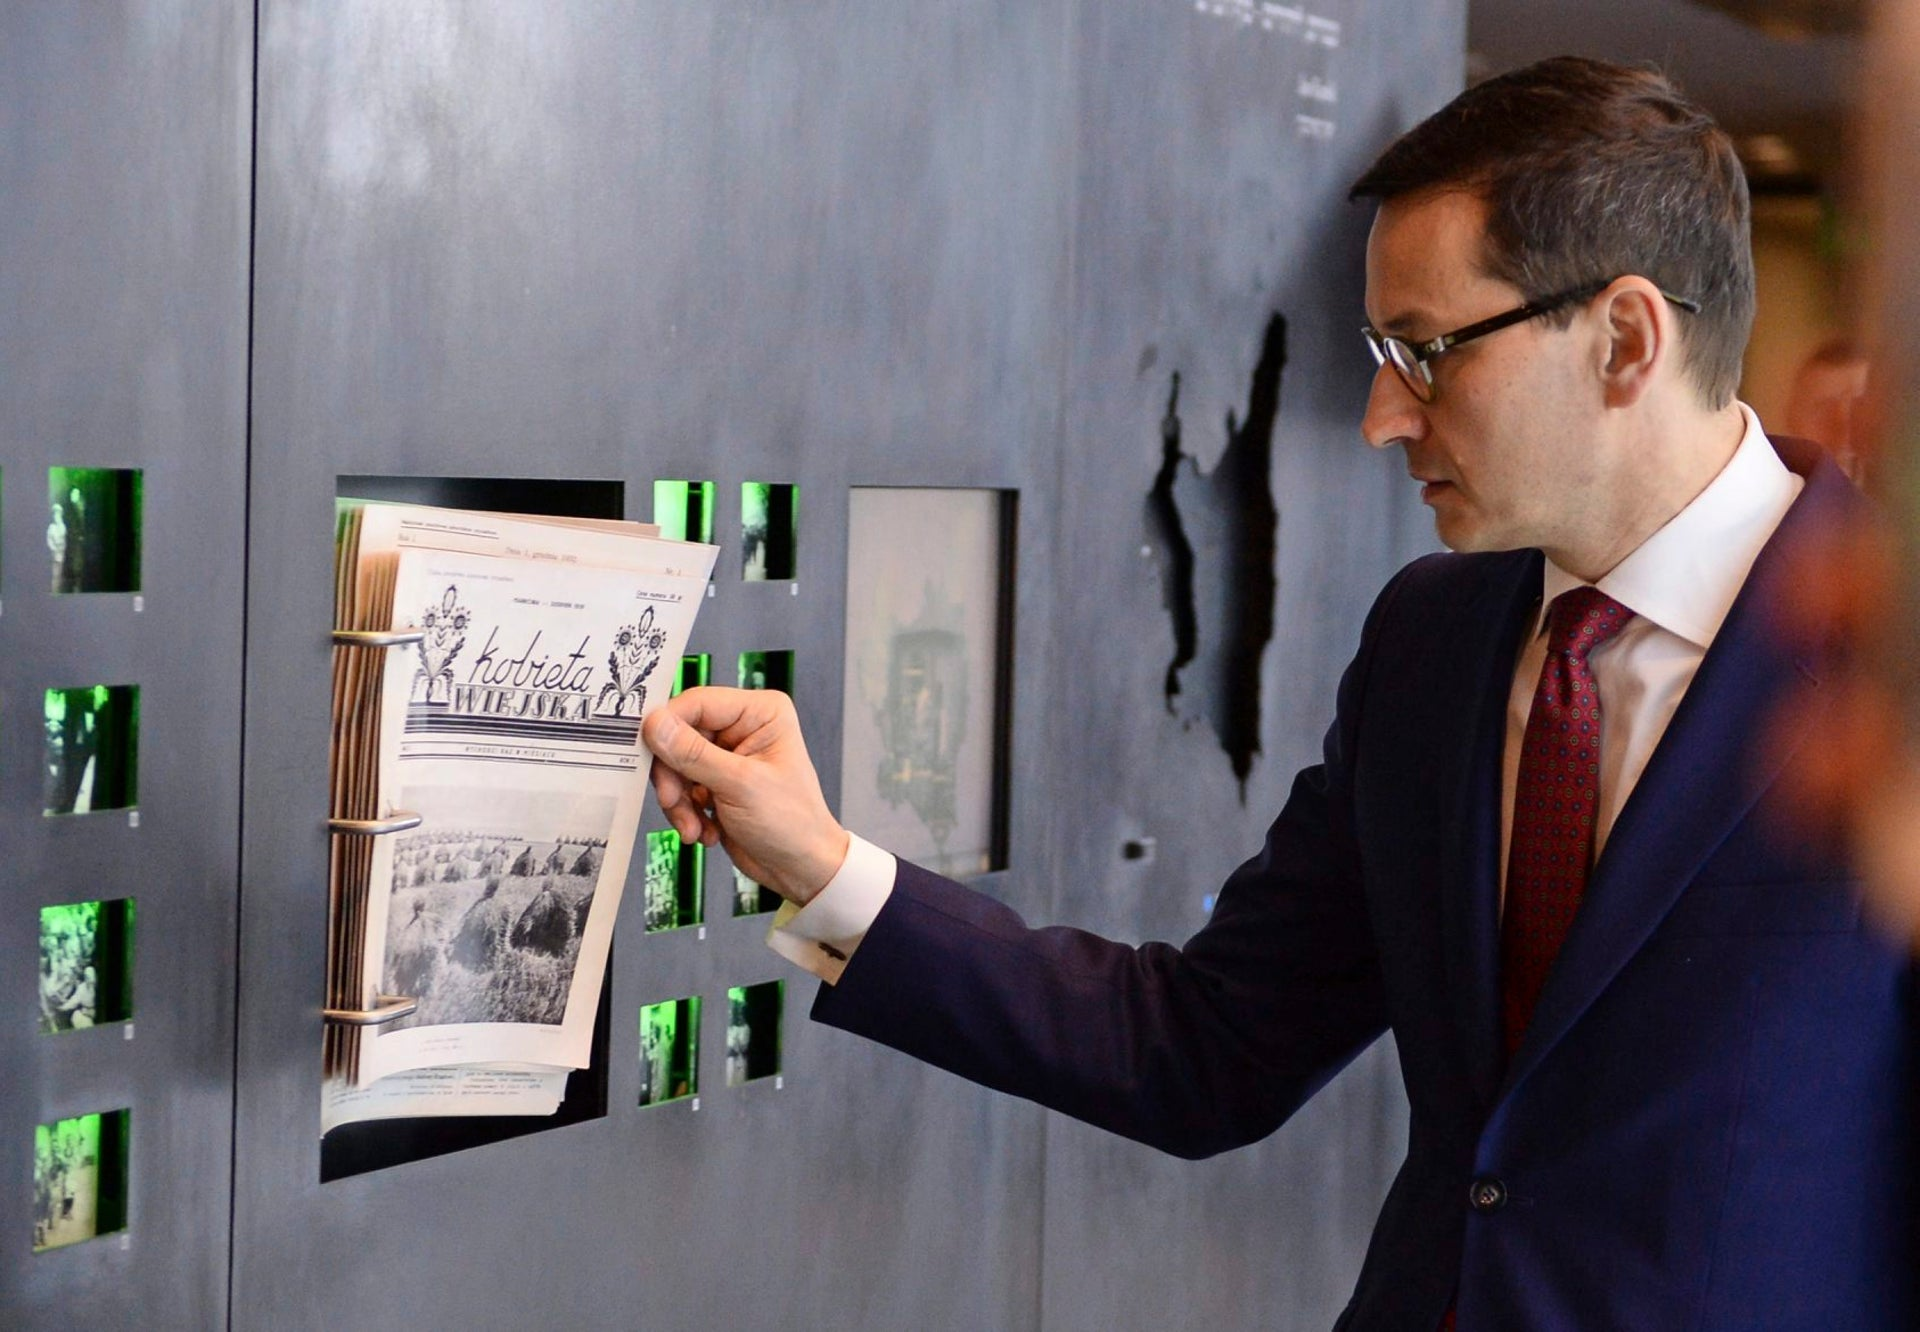 Polish Prime Minister Mateusz Morawiecki visiting the Ulma Family Museum of Poles Who Saved Jews during WWII, in Markowa, Poland, February 2, 2018.